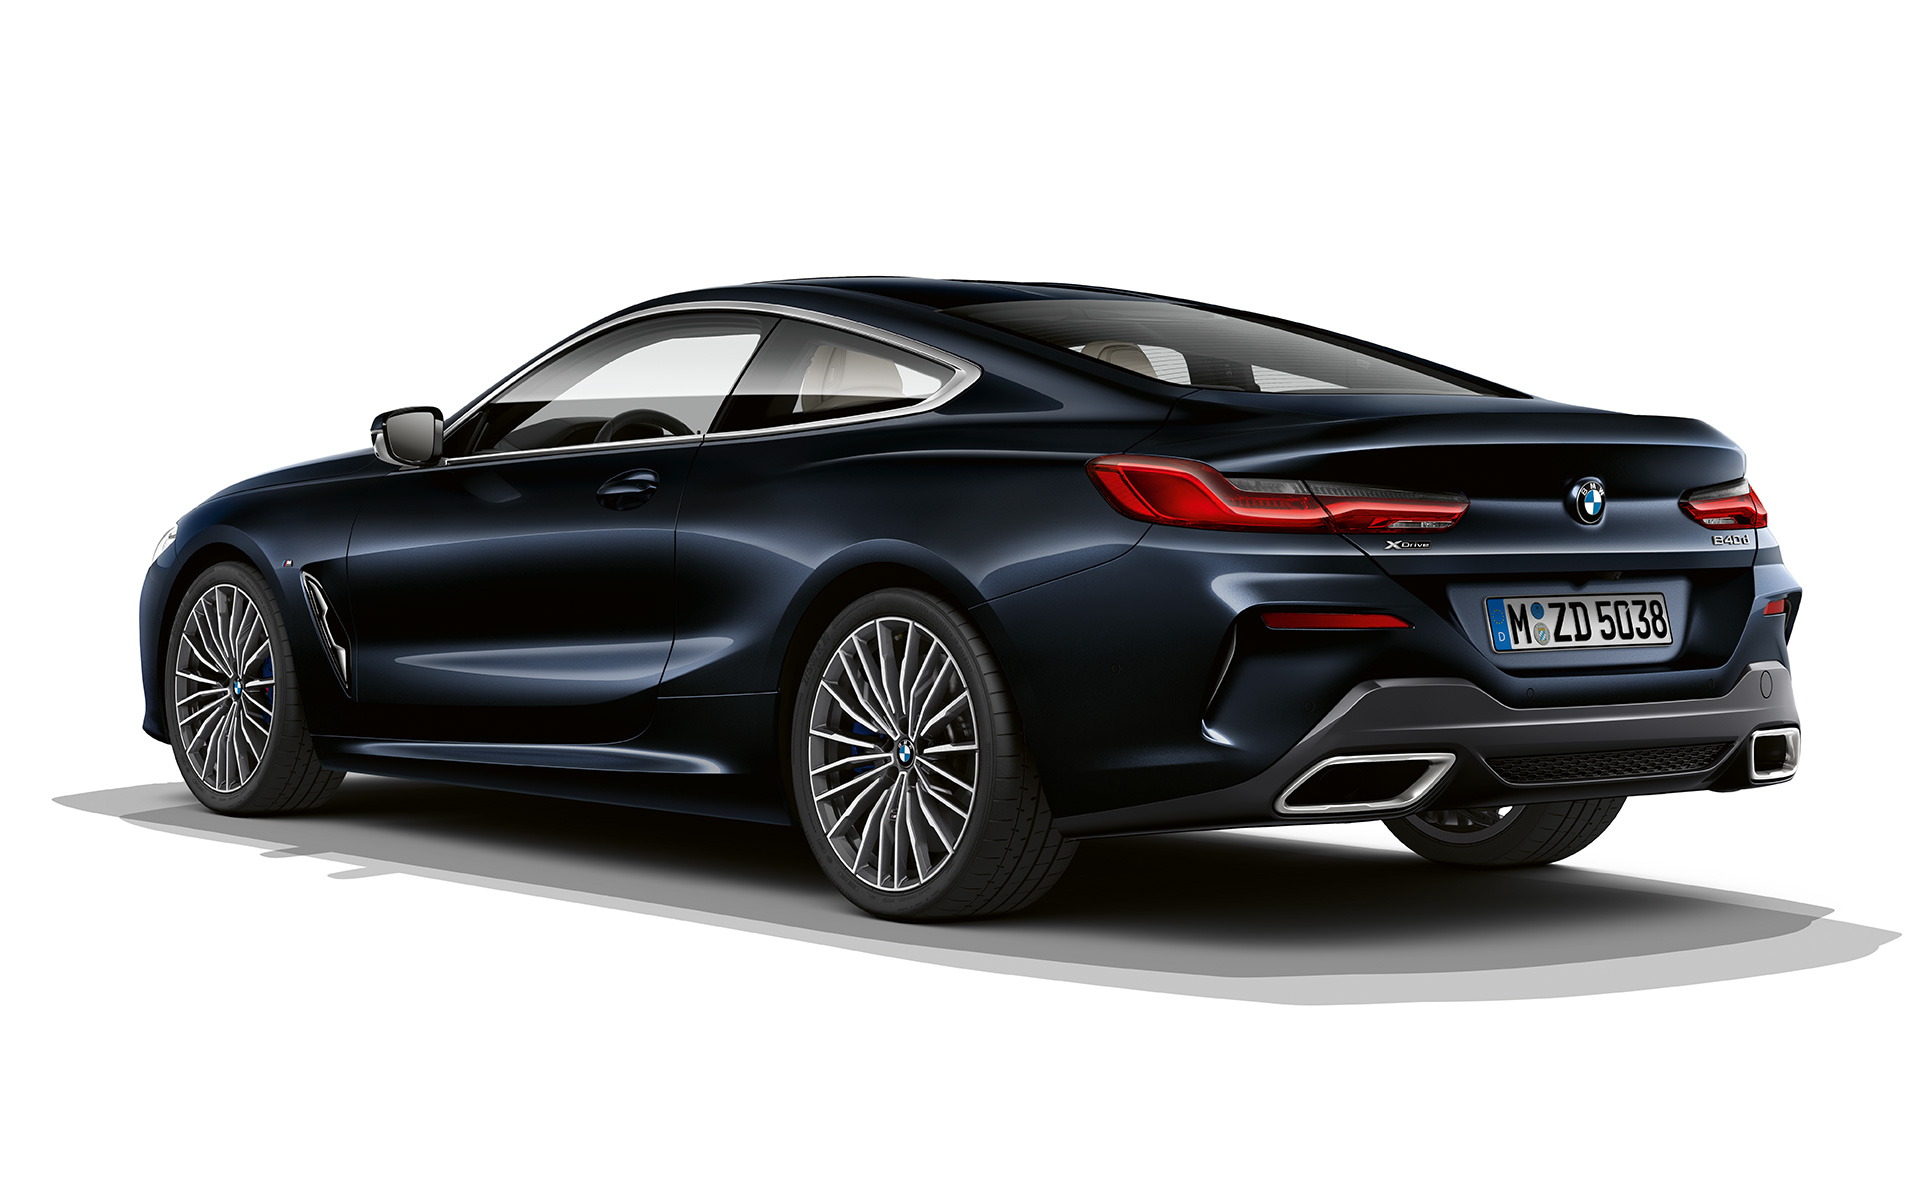 Still shot of the BMW 8 Series Coupé in carbon black metallic against a white background.